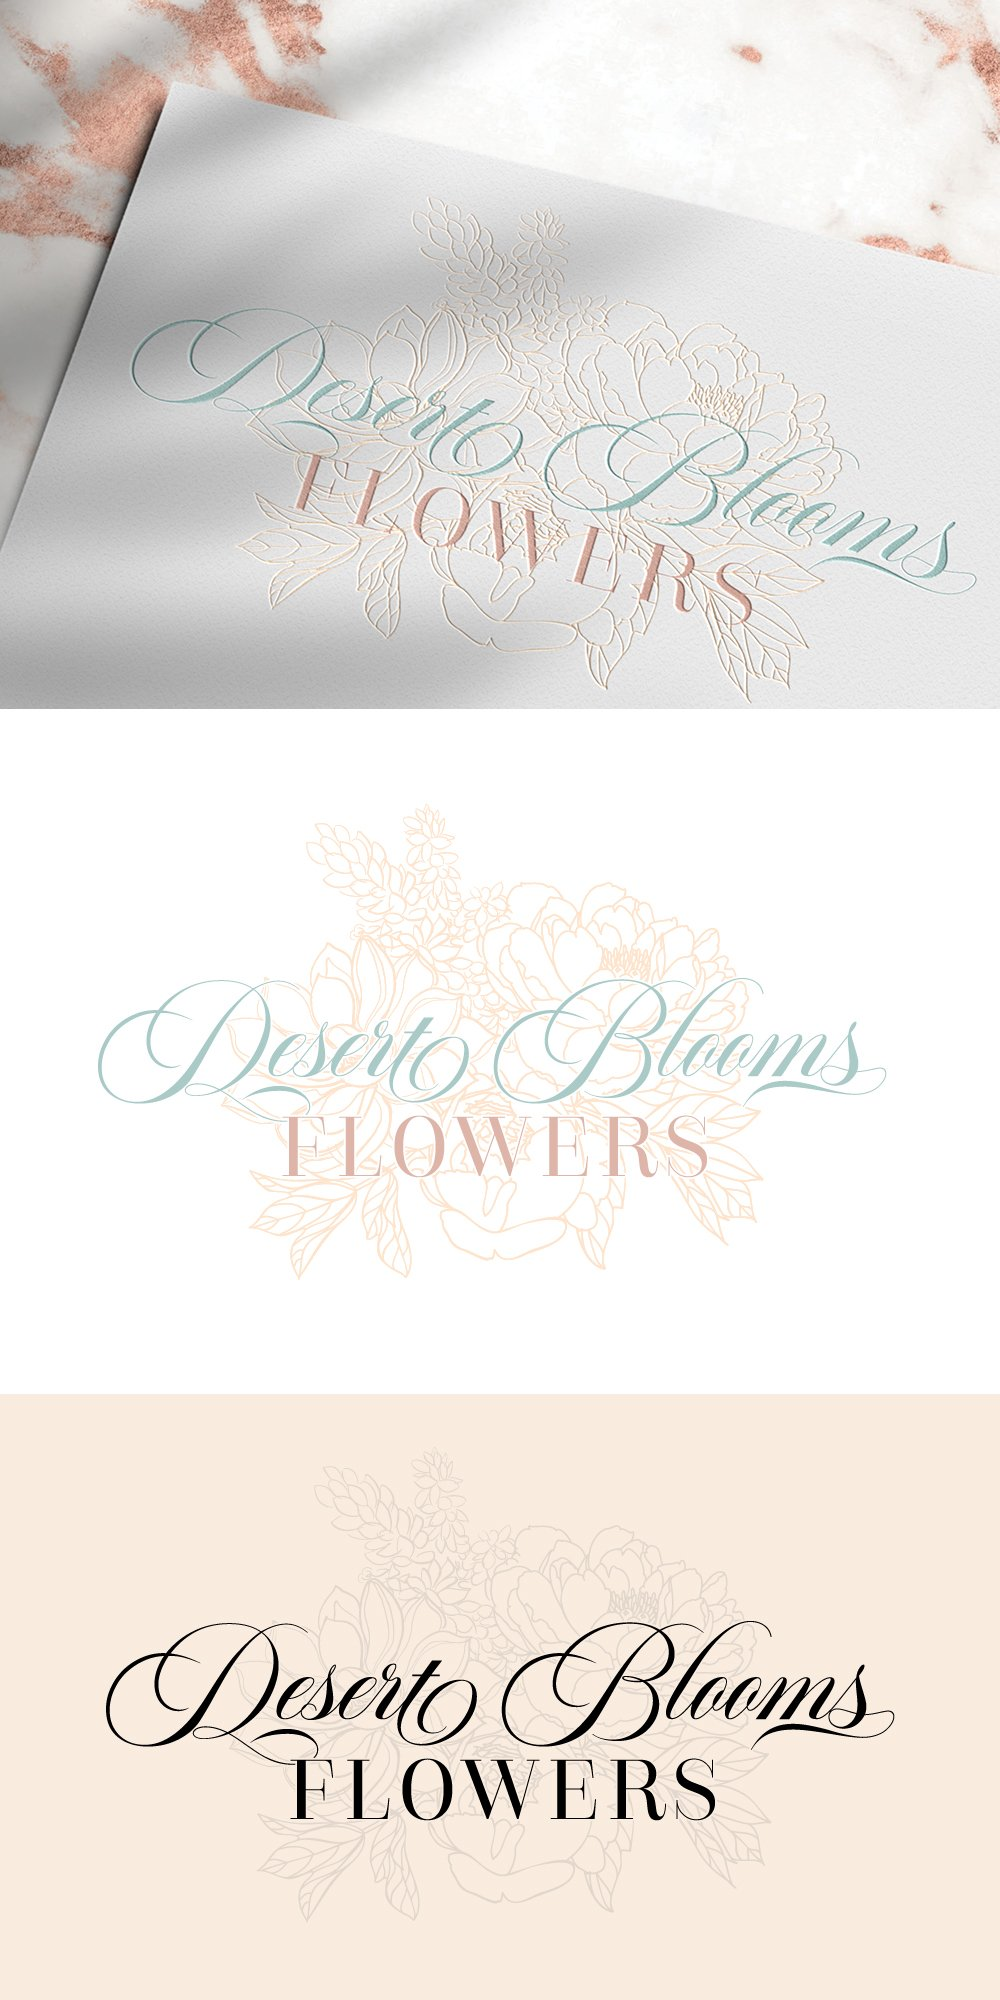 primary logo for Desert Blooms Flowers by Fancy Girl Design Studio with hand-drawn illustrations